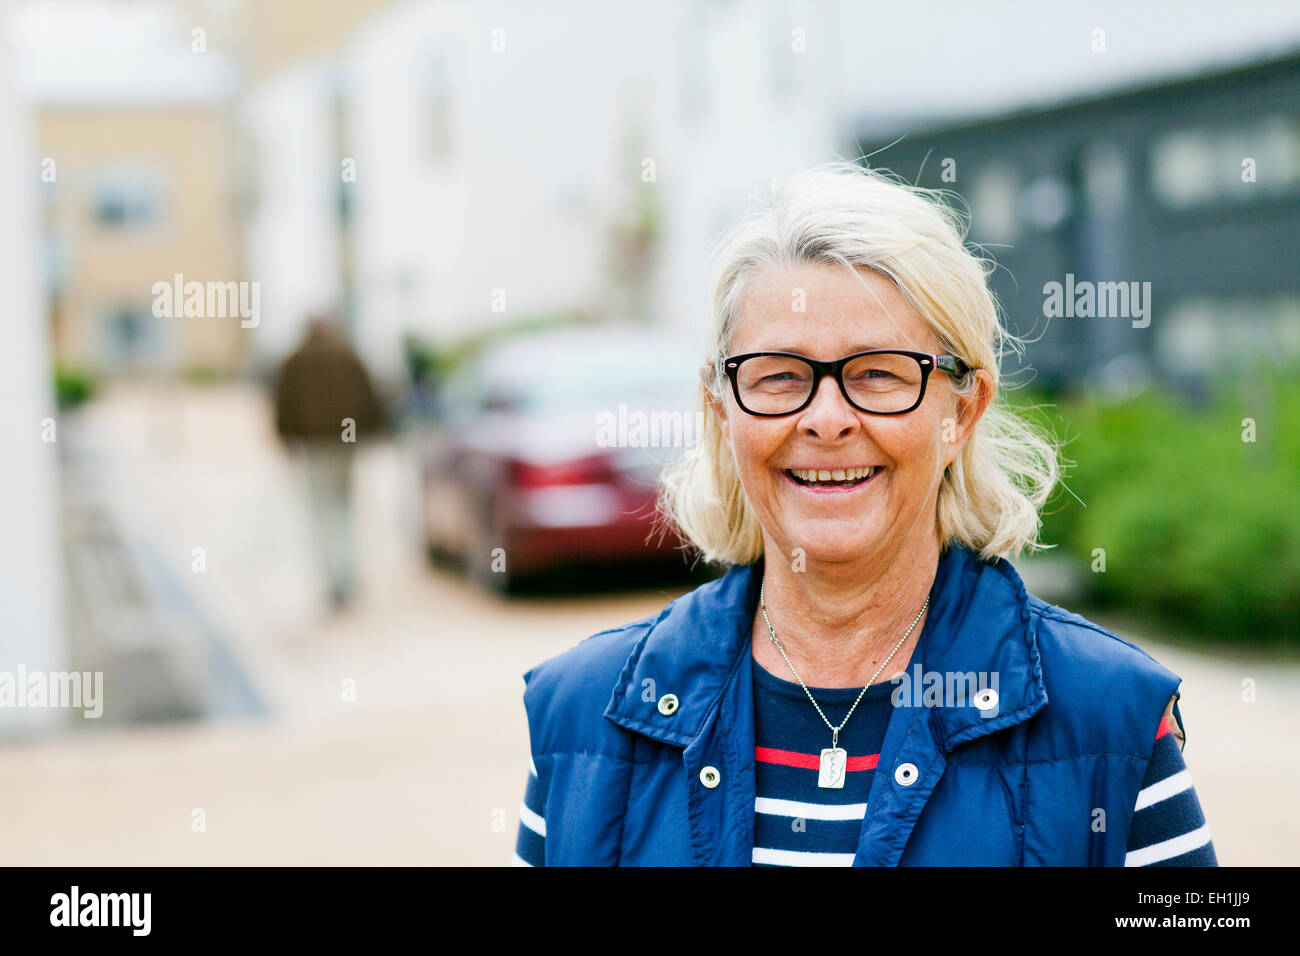 Portrait of smiling senior woman wearing glasses on street - Stock Image